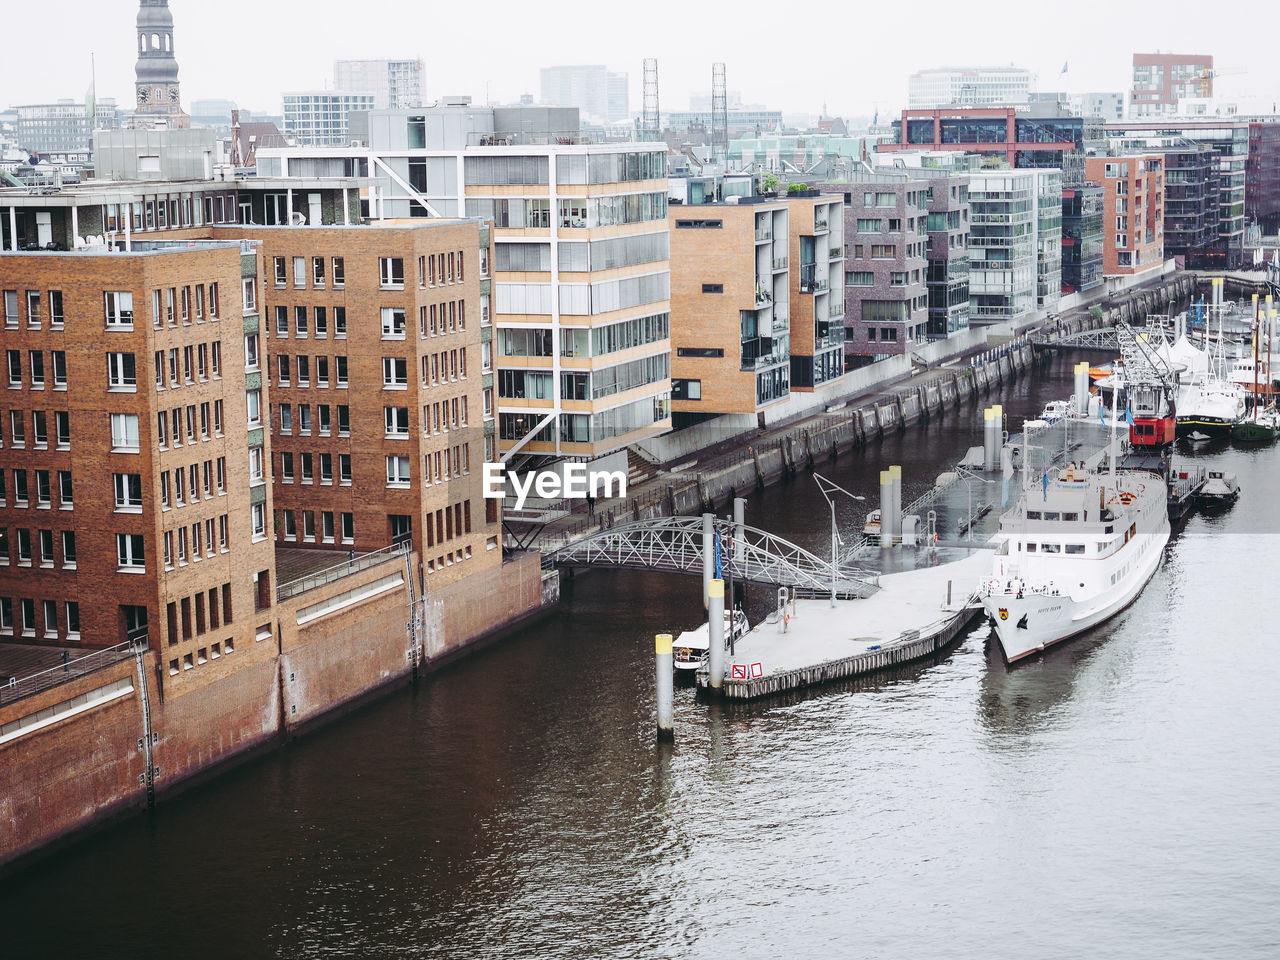 High Angle View Of Boats Moored On River By Buildings In City Against Sky